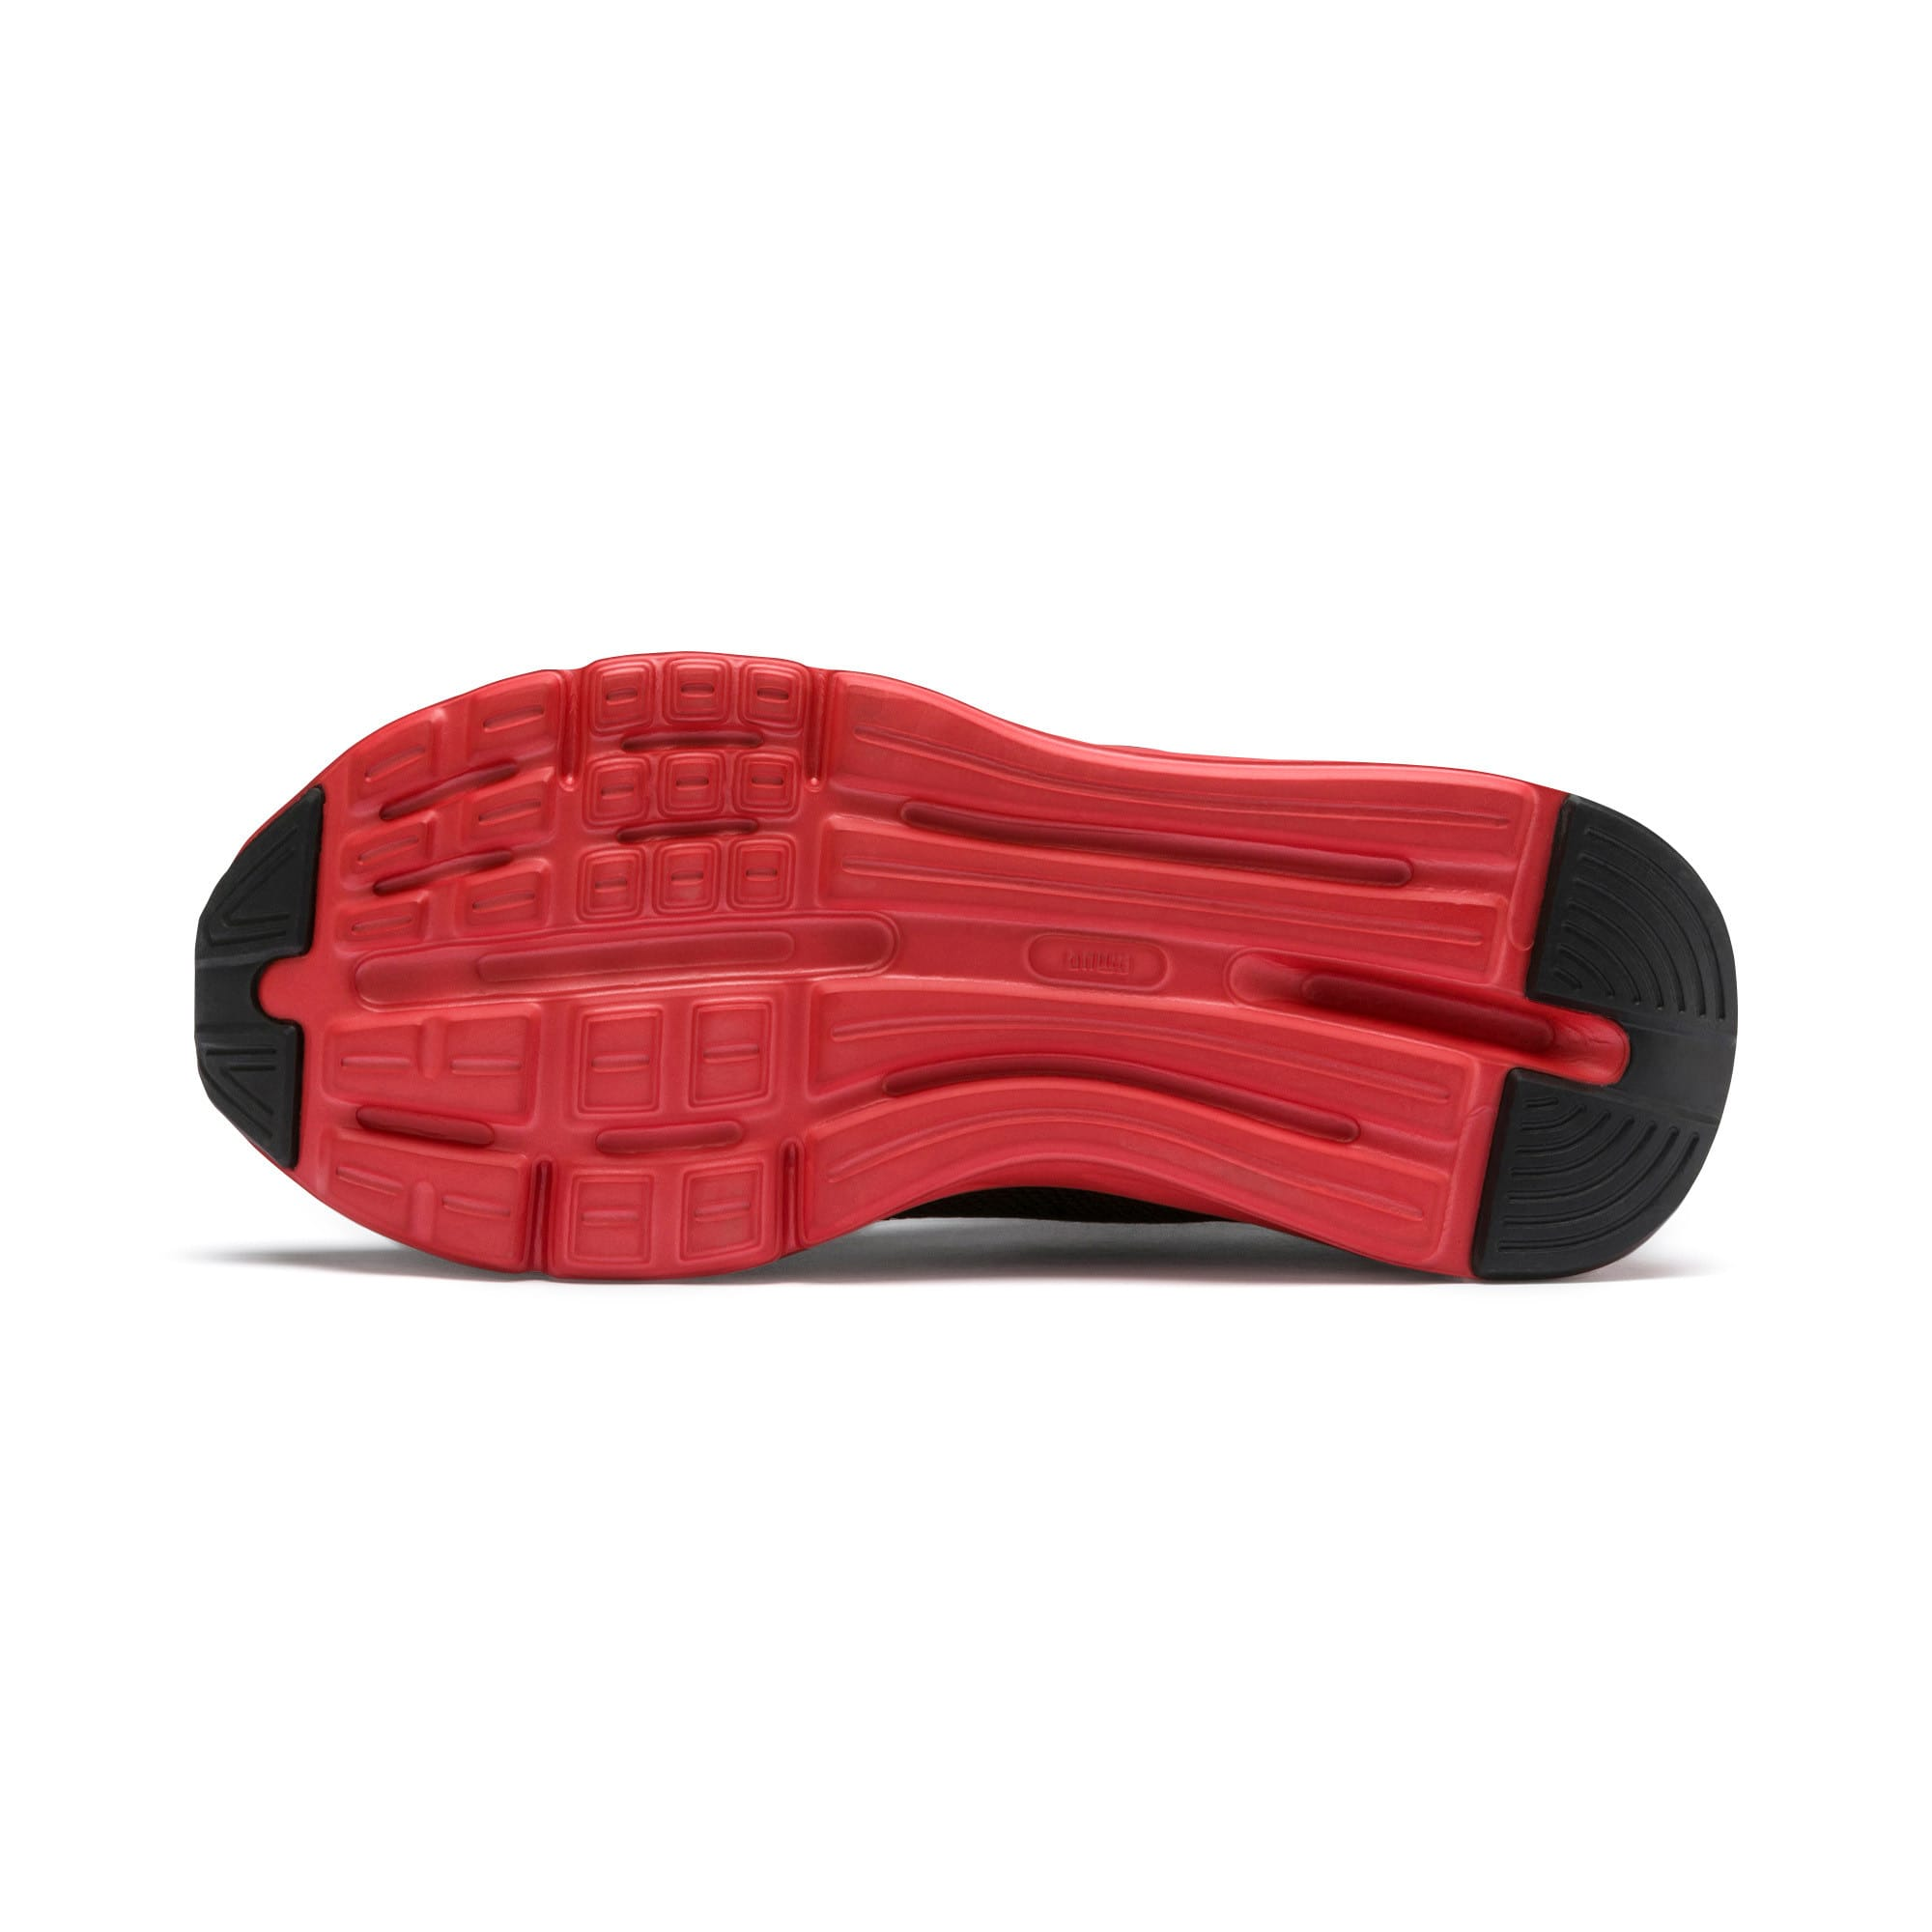 Thumbnail 4 of Enzo Beta SoftFoam Youth Trainers, Puma Black-High Risk Red, medium-IND